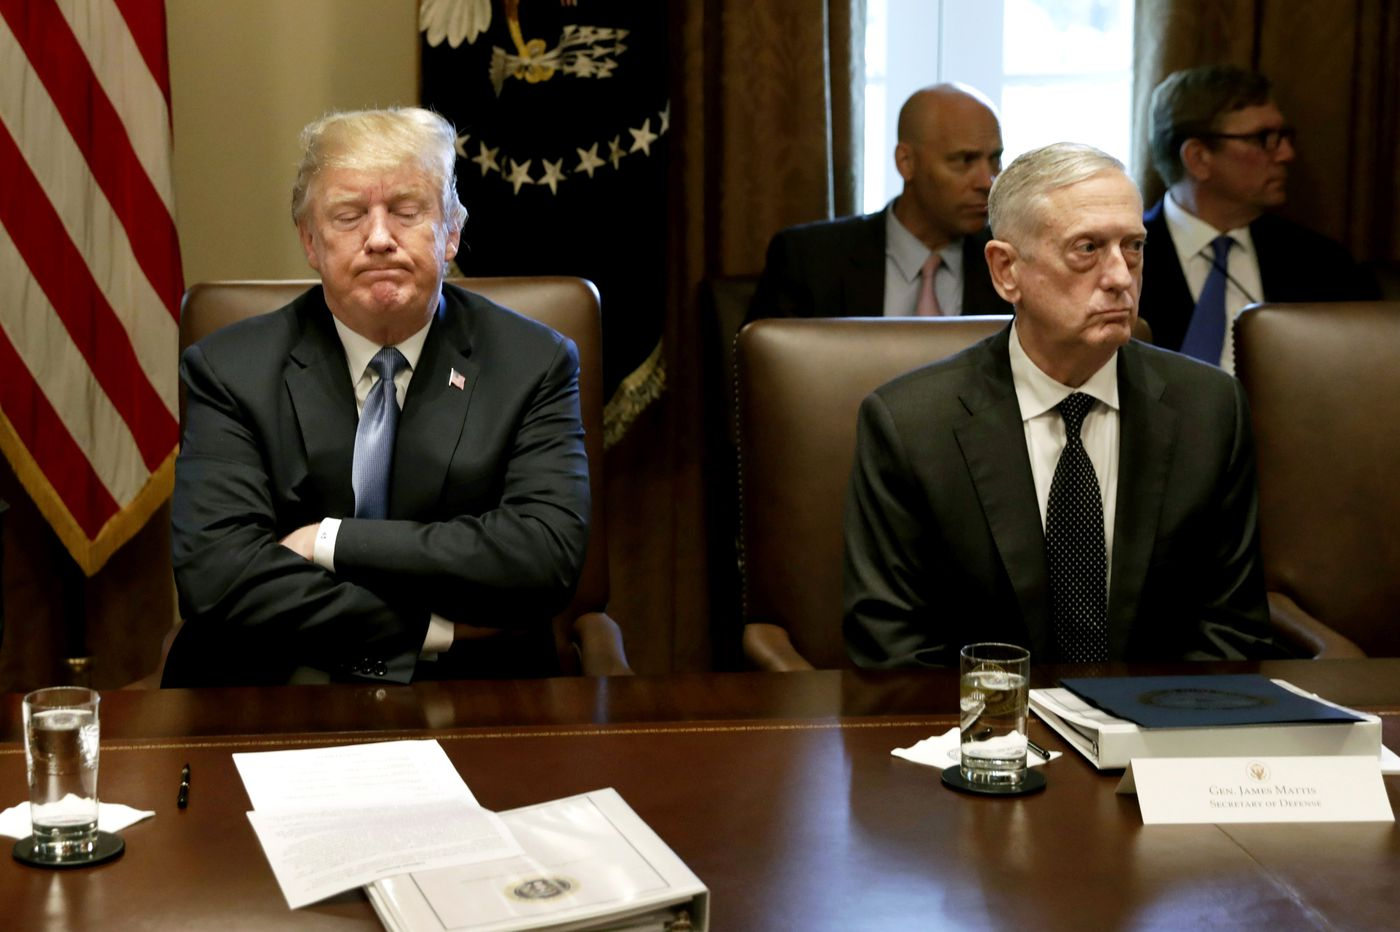 'A morning of alarm': Mattis departure sends shock waves abroad